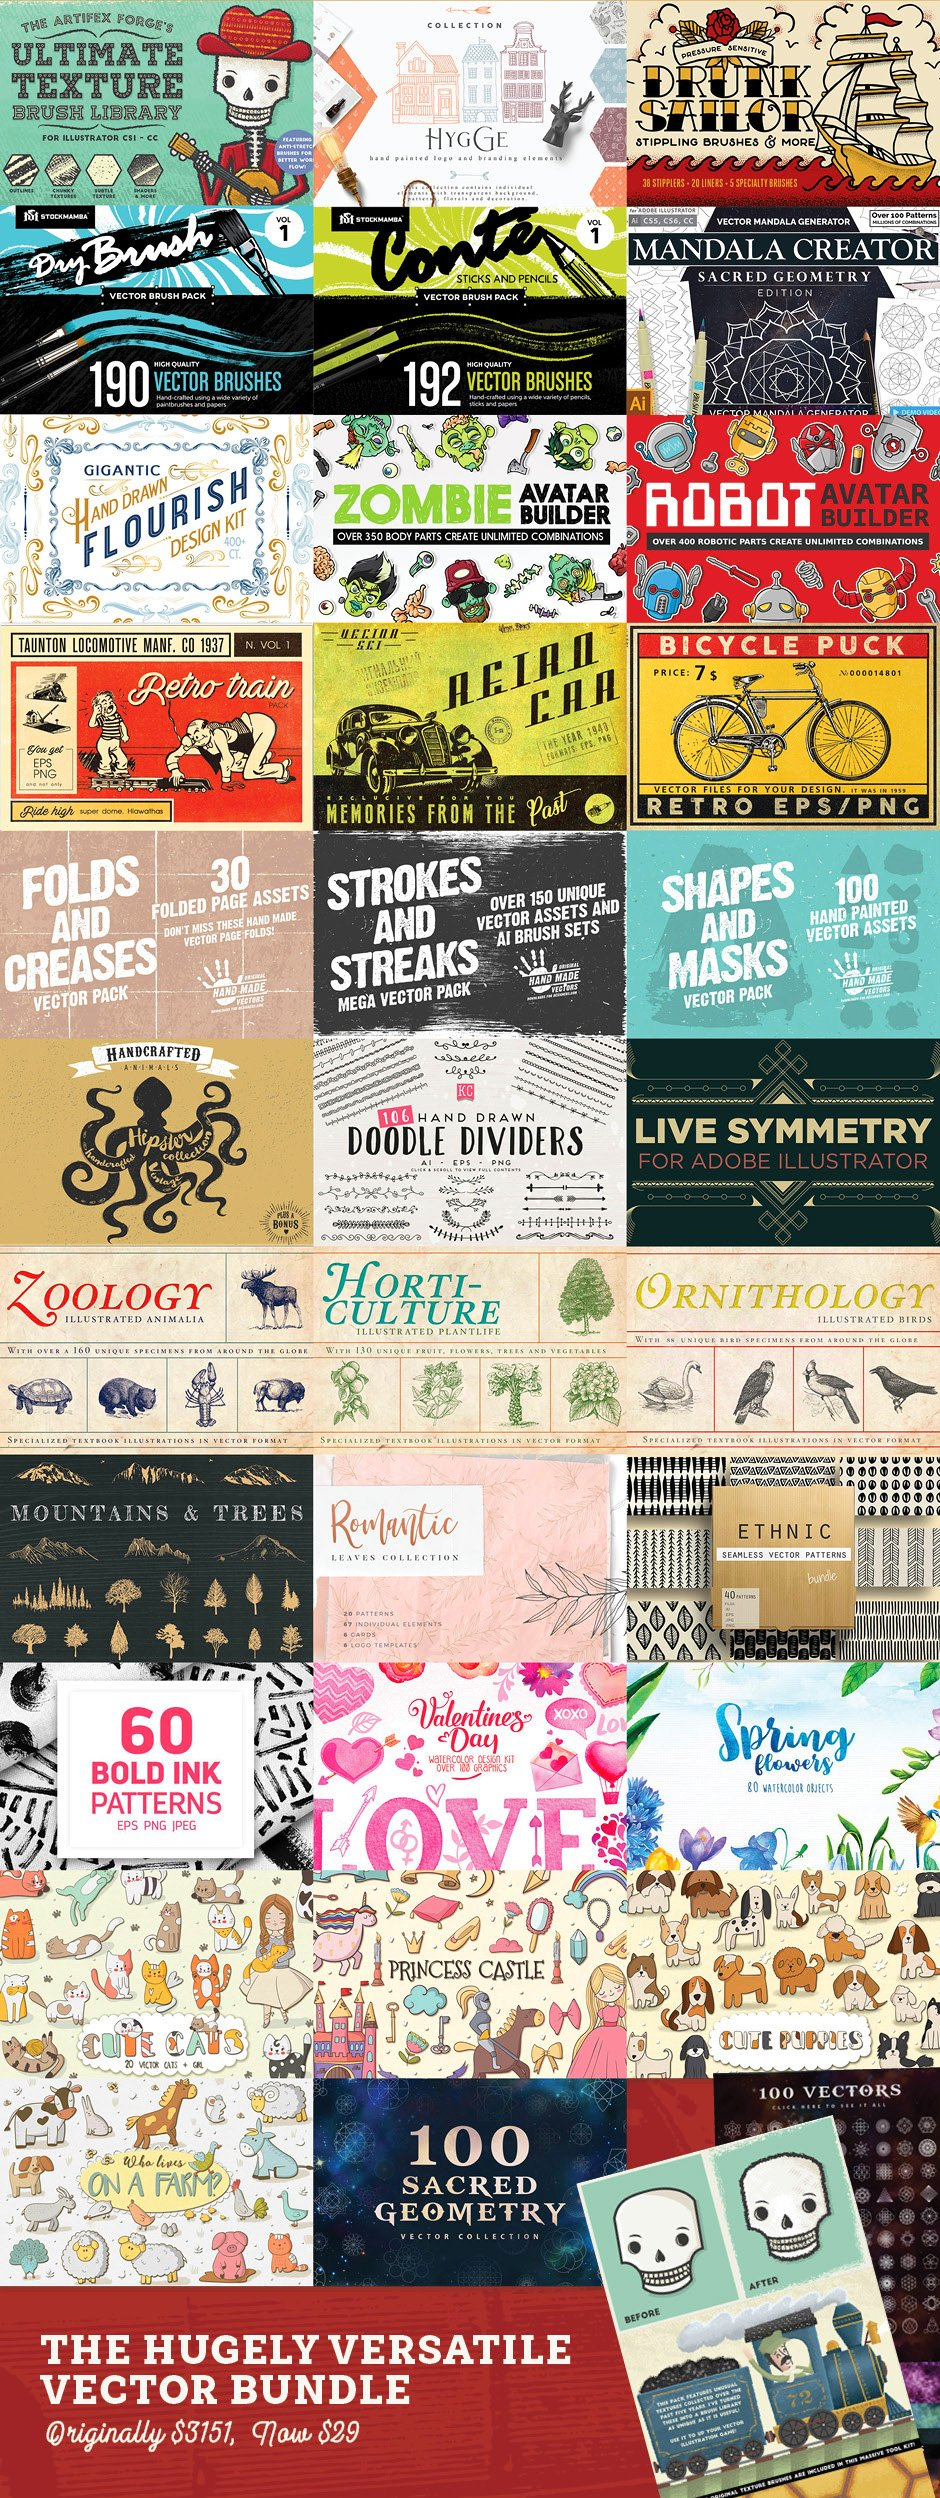 The Hugely Versatile Vector Bundle Just $29